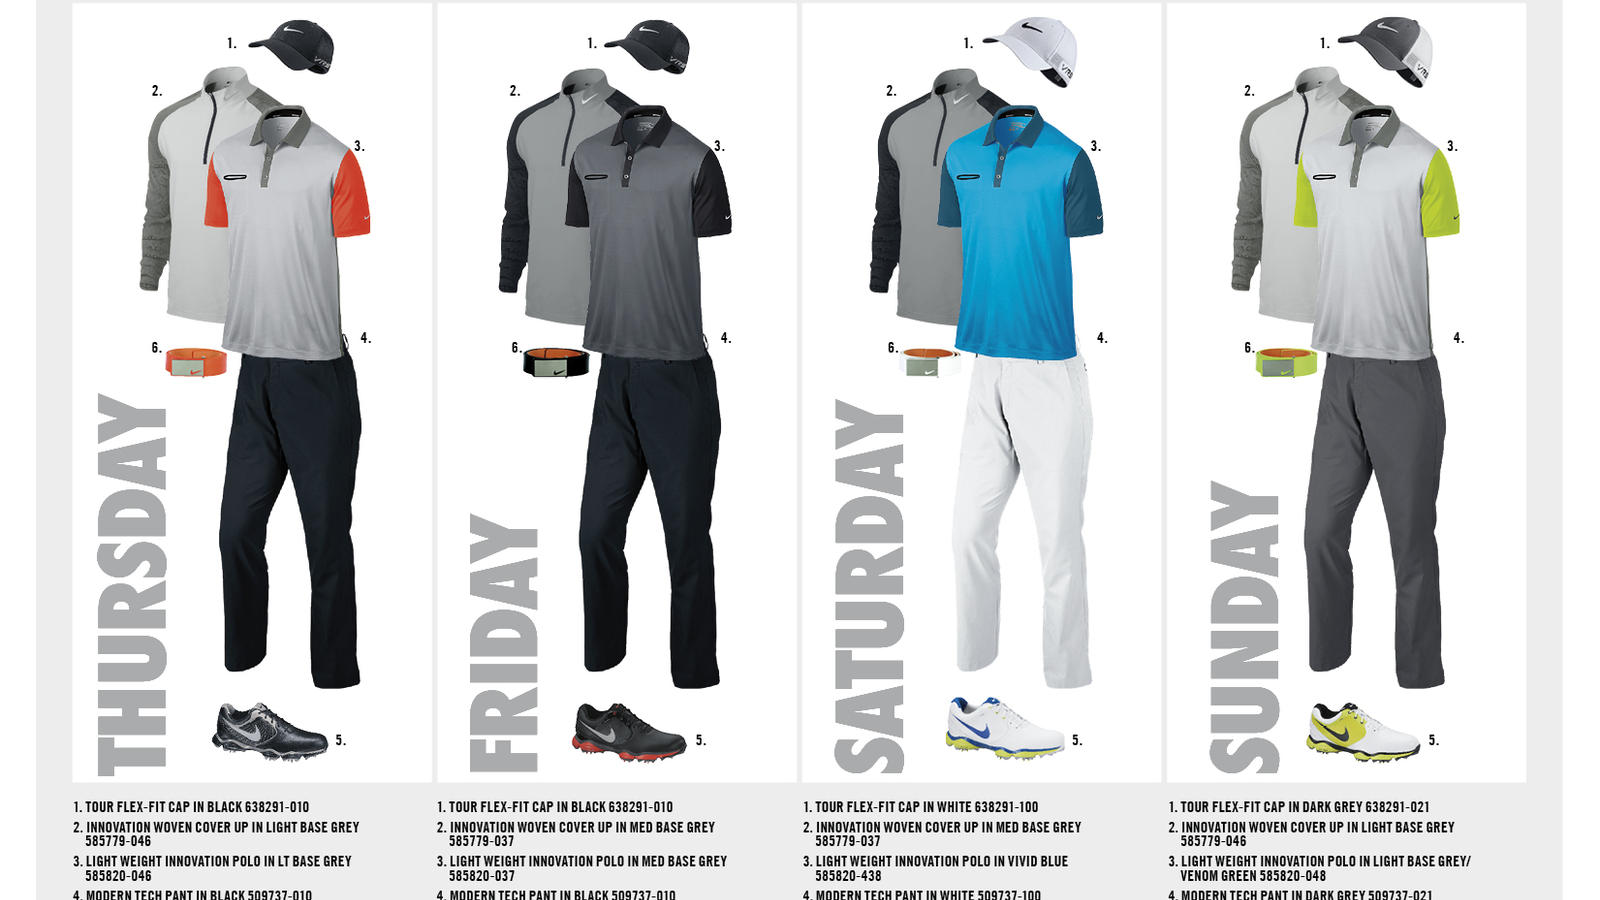 First Major Scripting - McIlroy